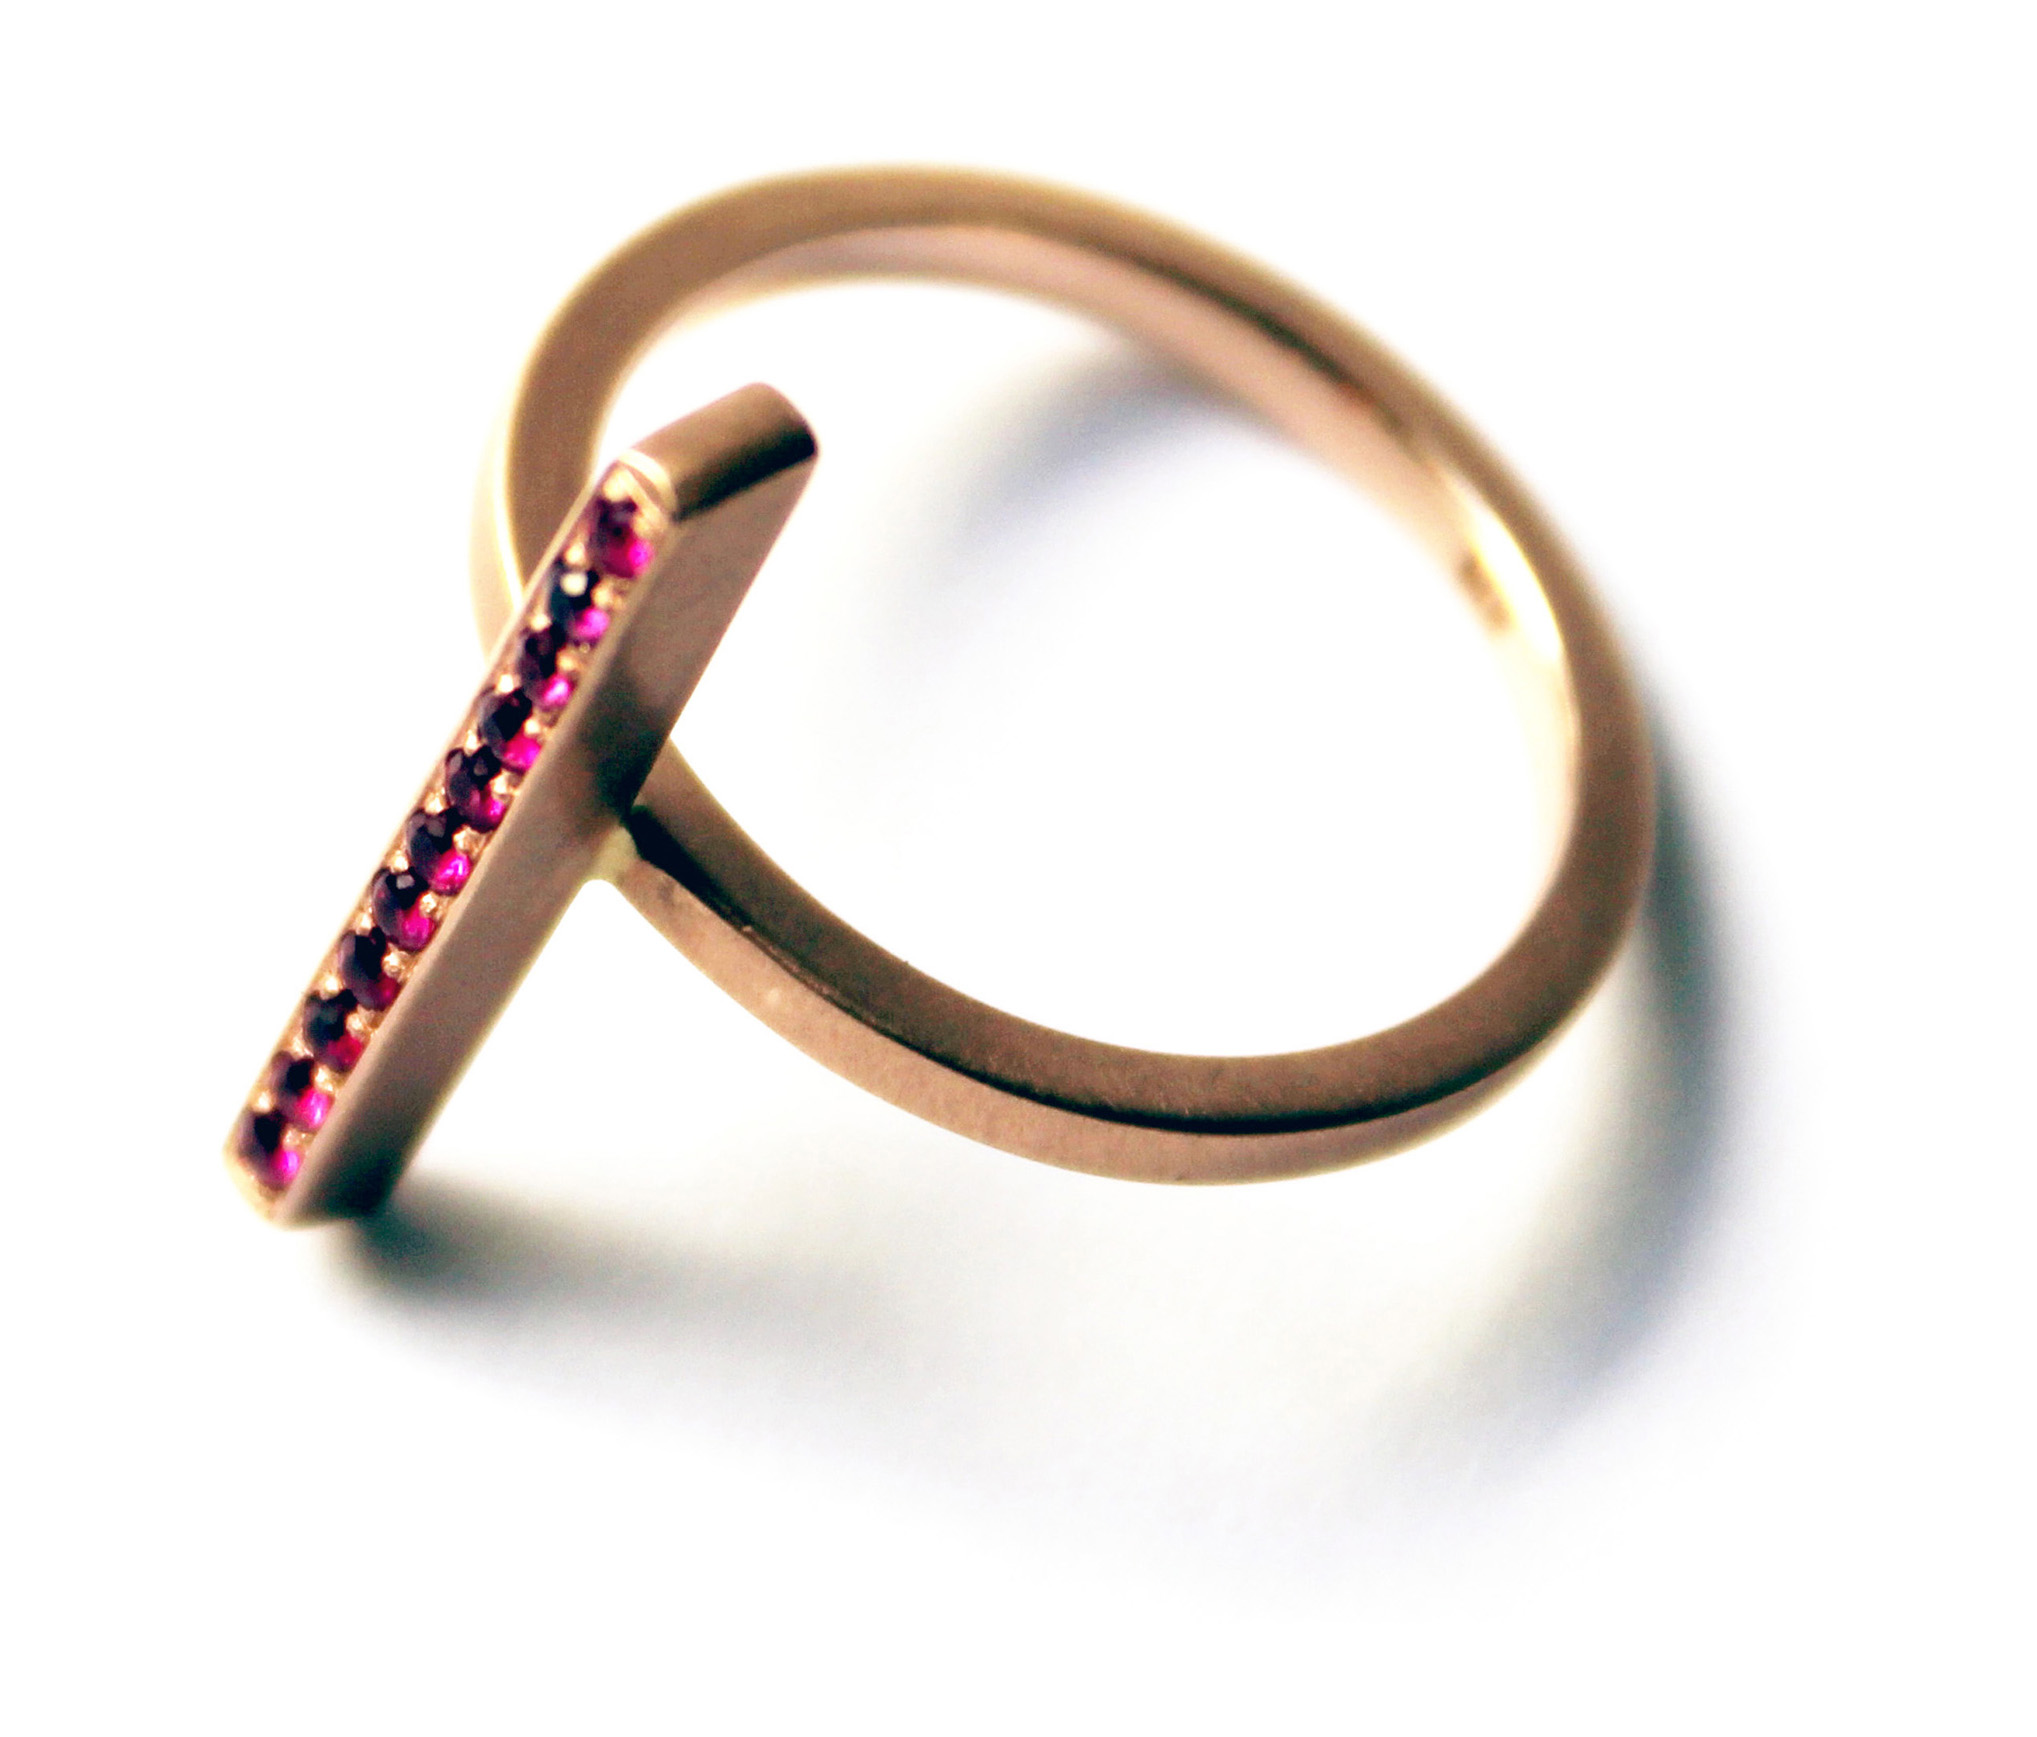 ROSE GOLD SHIV RING